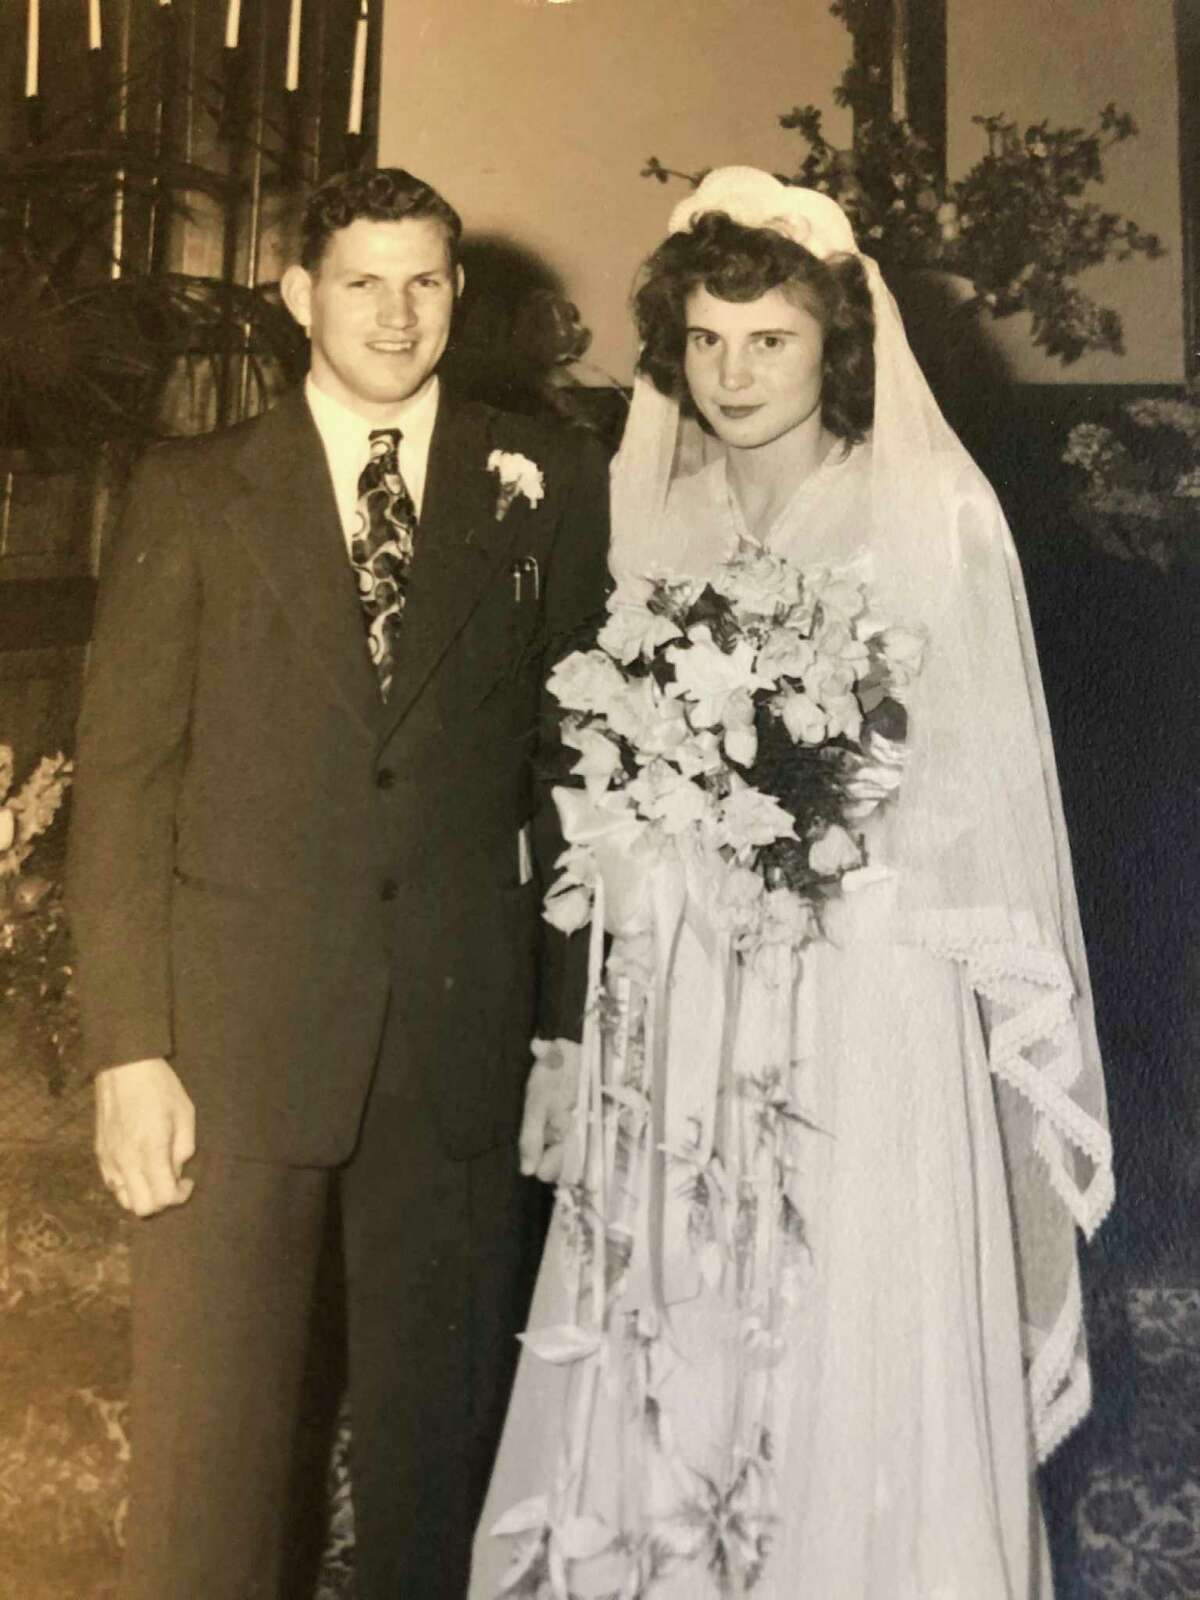 Wilbur Seamster and Leona Clark were married on May 29, 1947. They attended Sunday School at First Baptist (then in downtown Midland) together. Leona, then 8 years old, remembers Wilbur, then 12, putting his feet on the back of her chair which annoyed her no end. Their marriage endured for 72 years, with Wilbur passing away in 2019. (Photo provided)